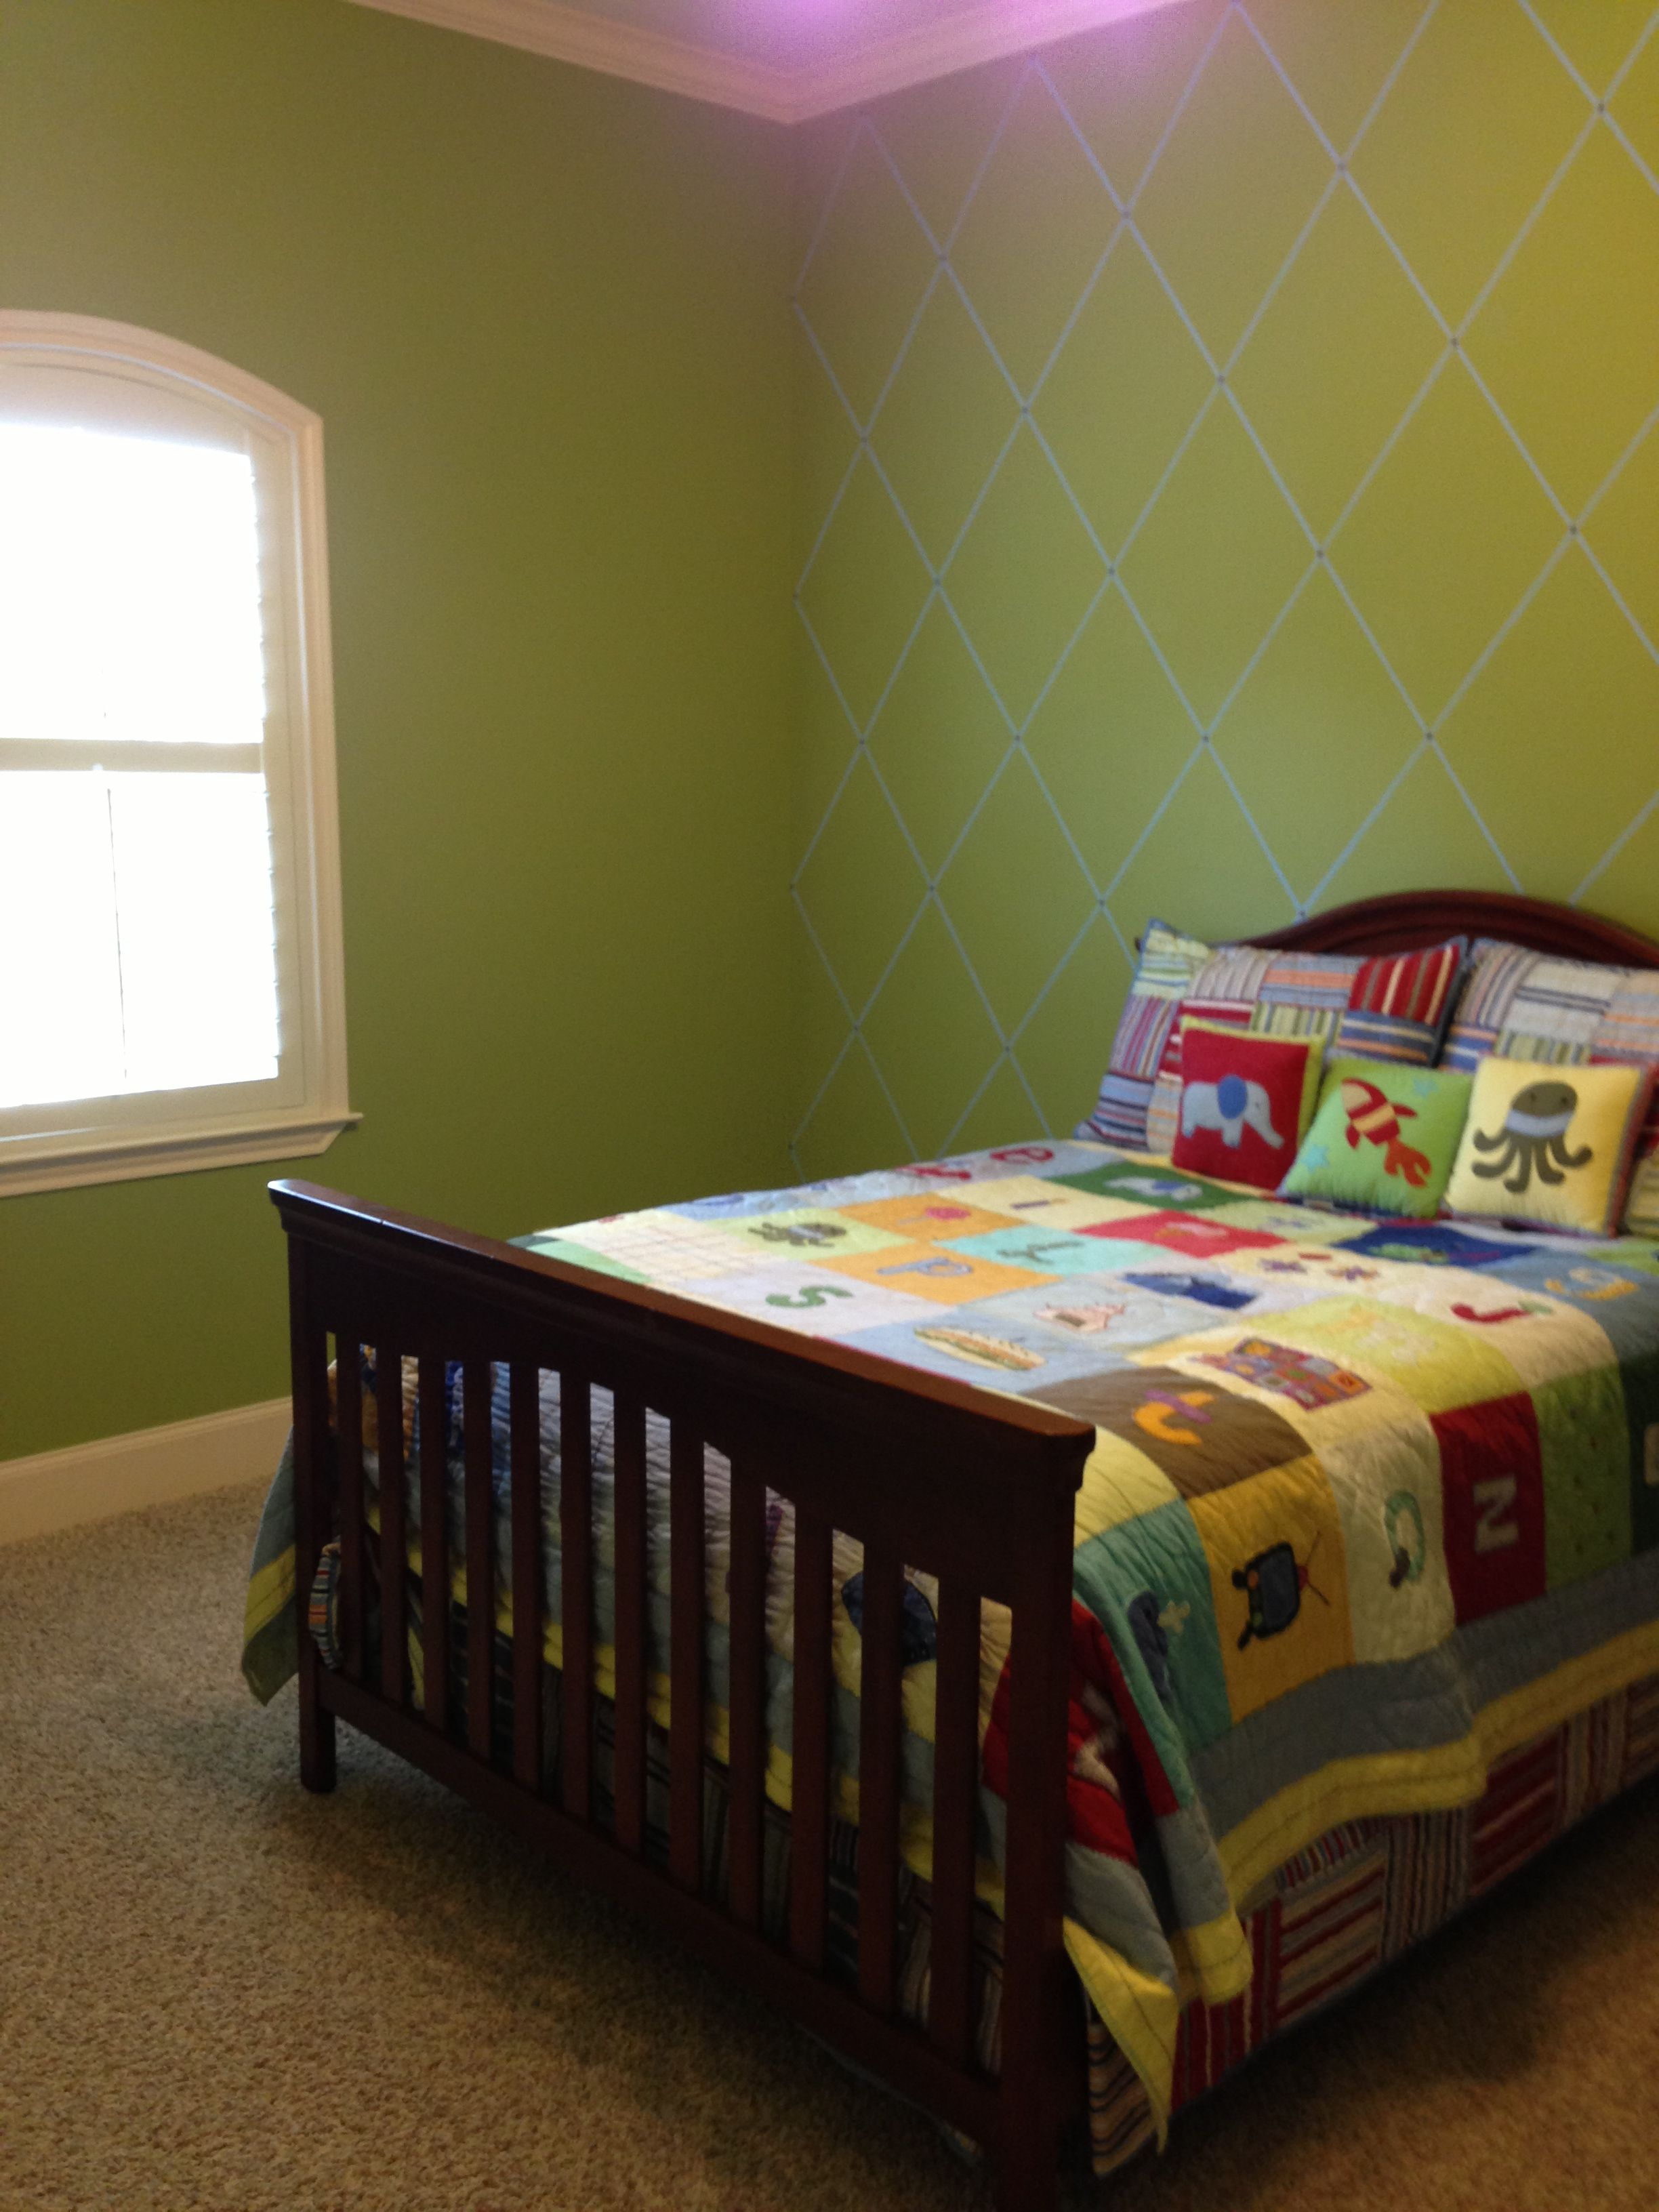 madras for quilt pottery room white quilts kids boy house pin barn at beach the plaid bunkroom lea